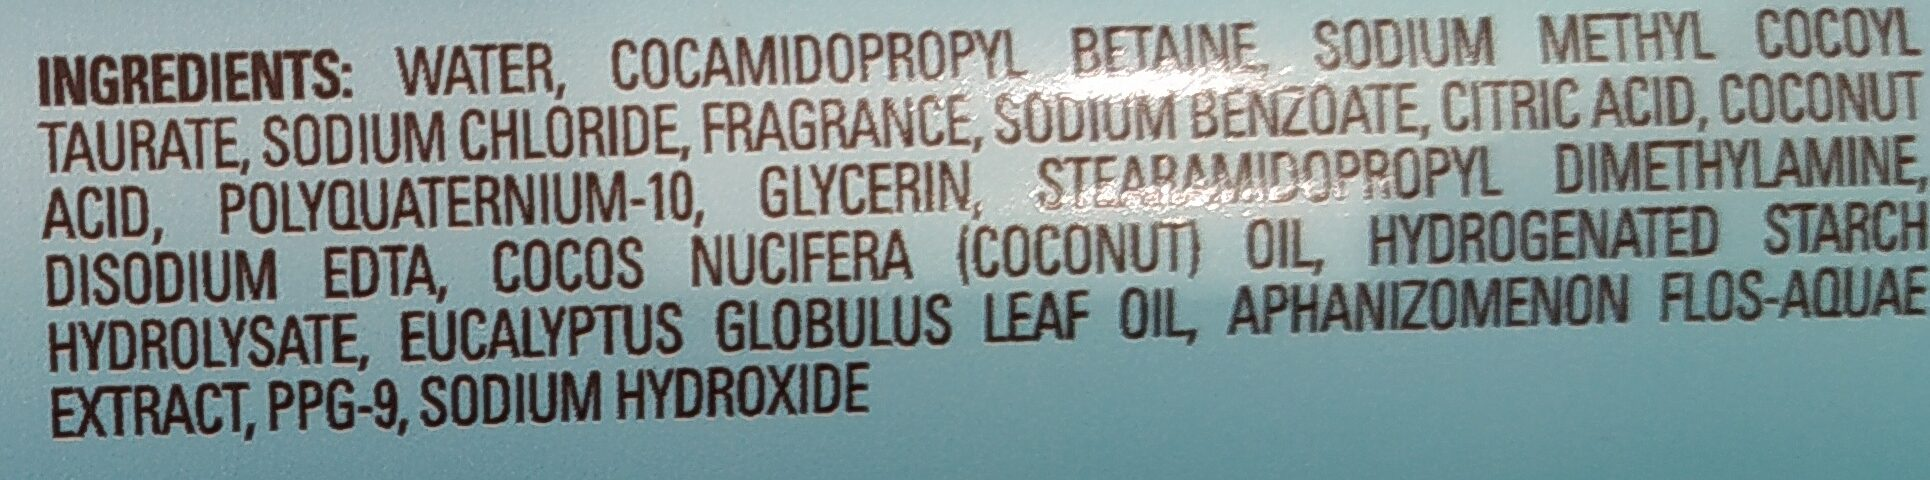 Blue-Green Algae & Eucalyptus Conditioner - Ingredients - en